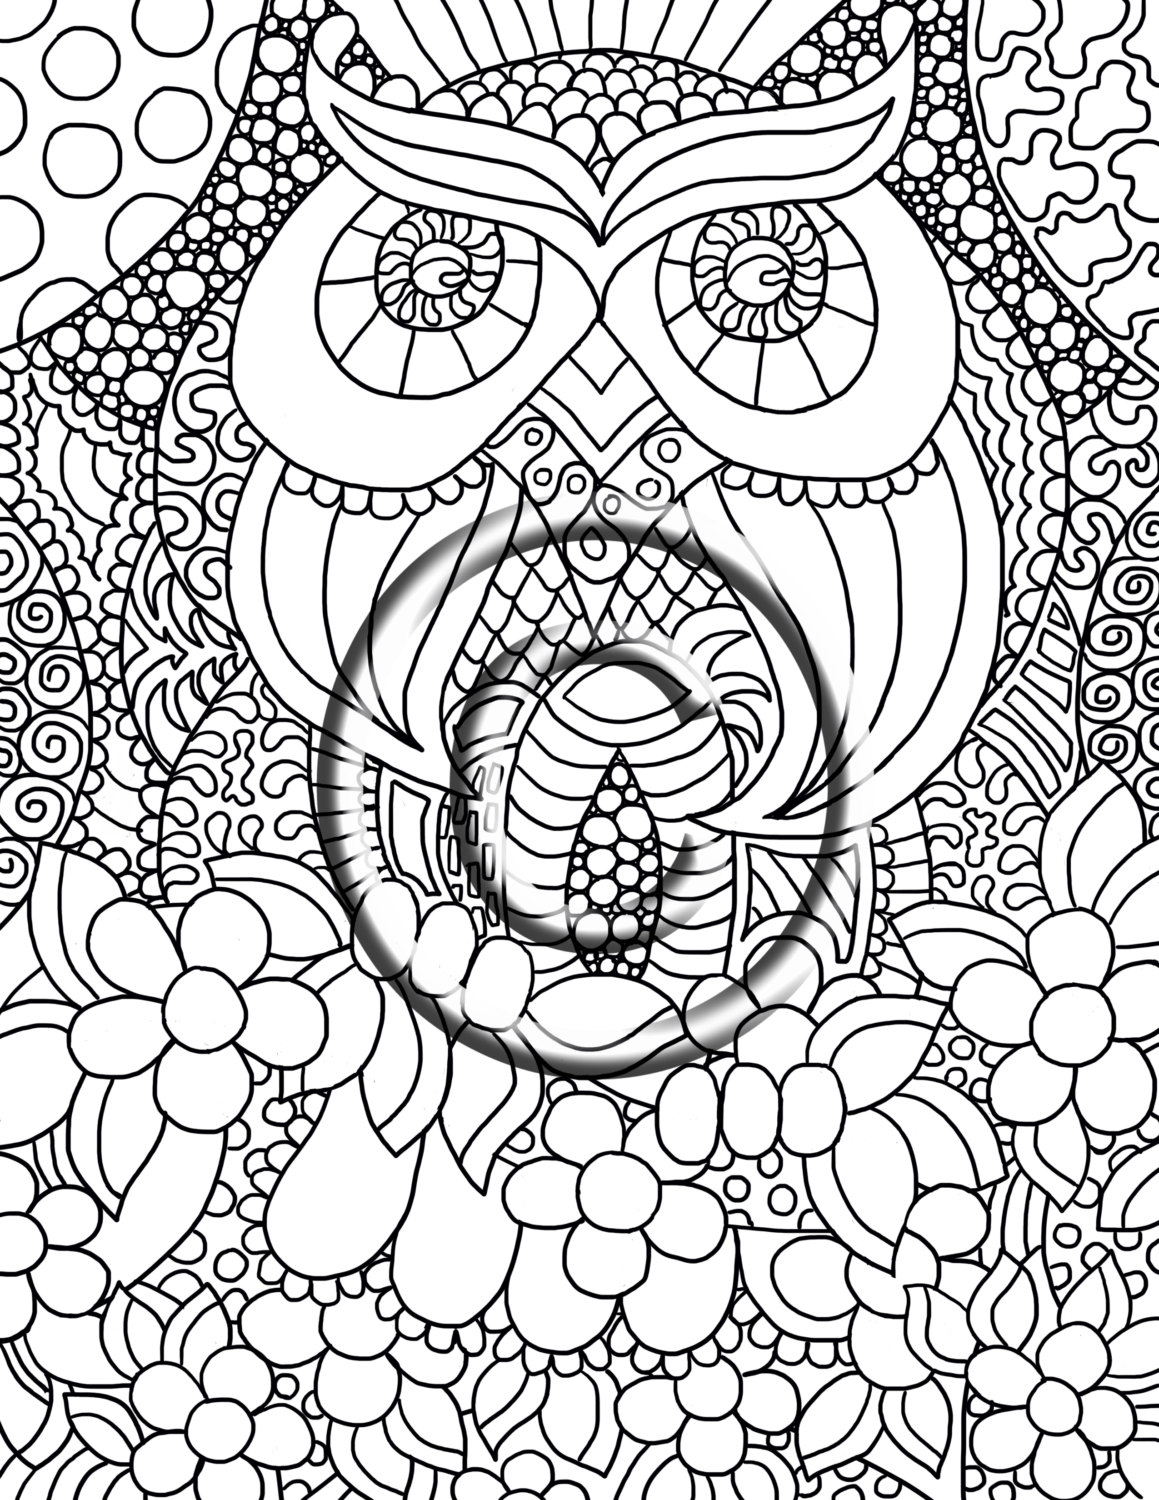 1159x1500 Digital Download Coloring Page Hand Drawn Zentangle Inspired Owl